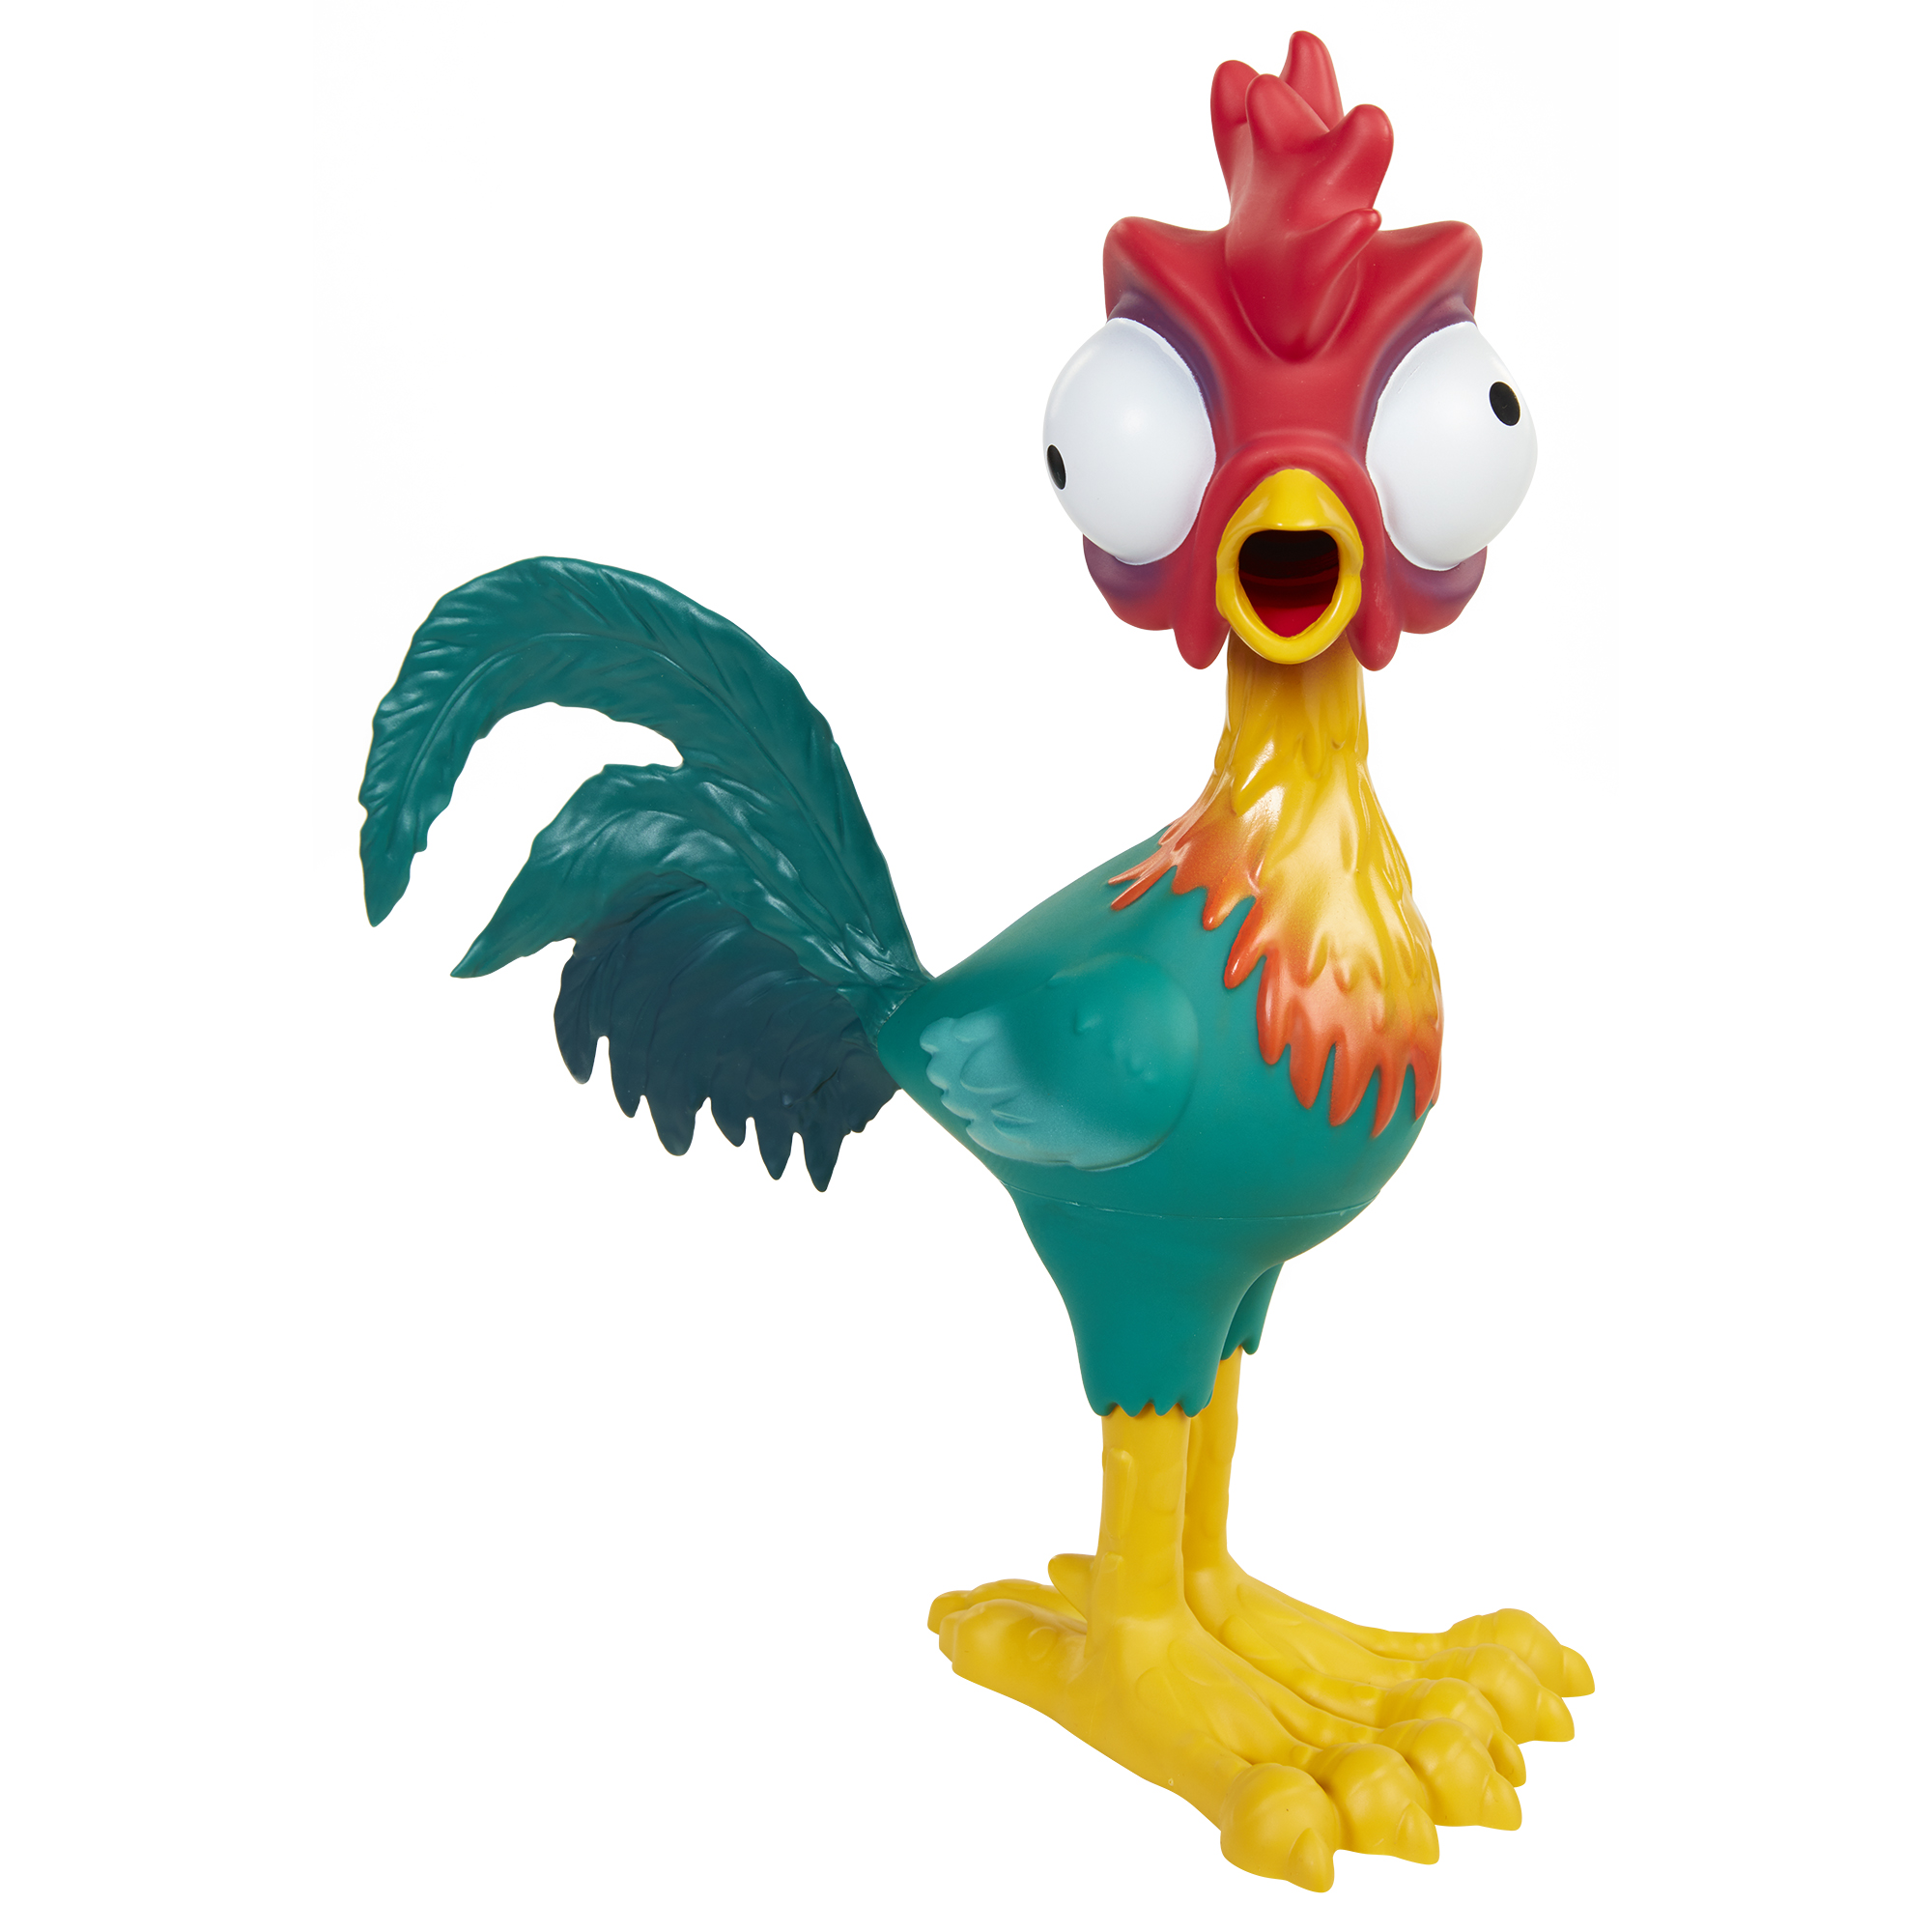 Moana Squeeze and Scream HeiHei Disney